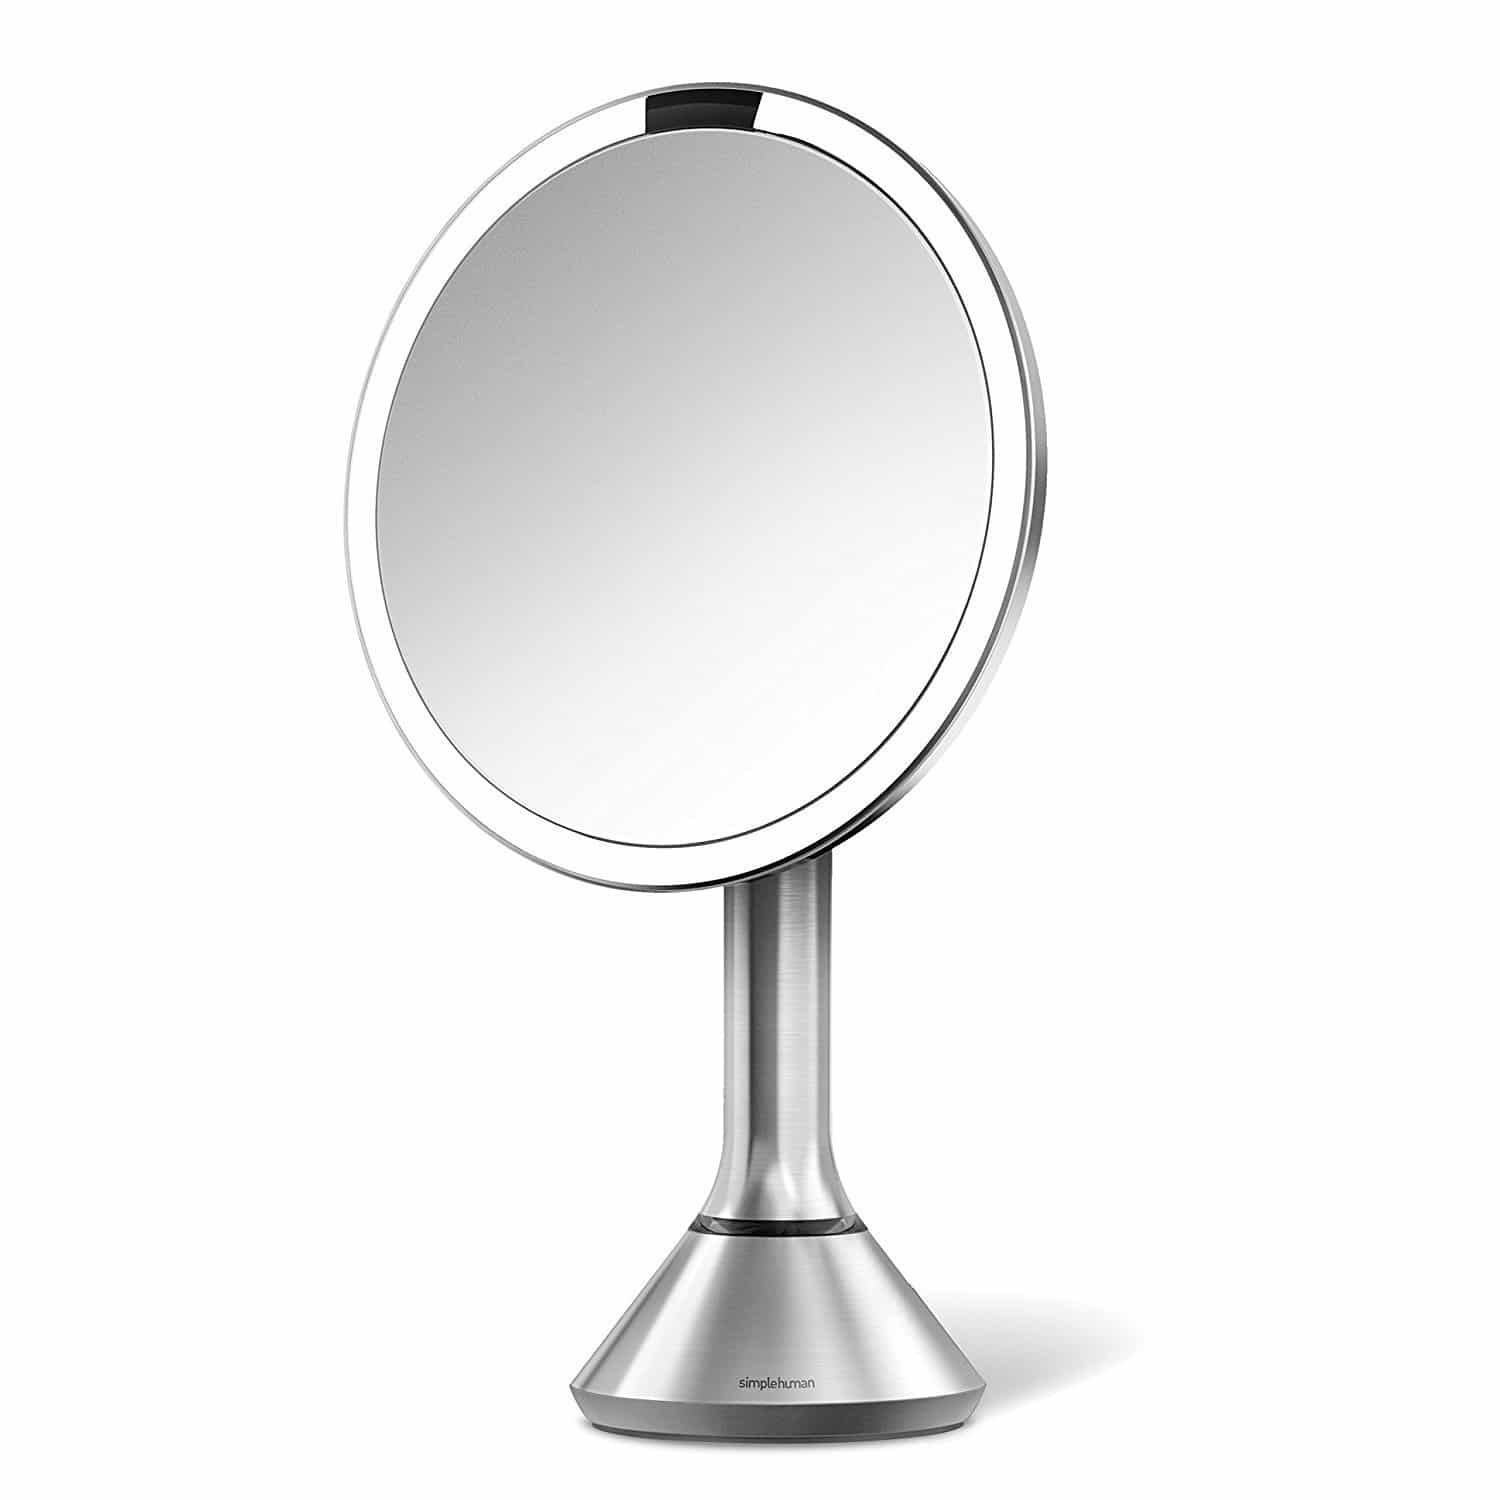 Top 10 Best Lighted Makeup Mirrors In 2020 Most Review Makeup